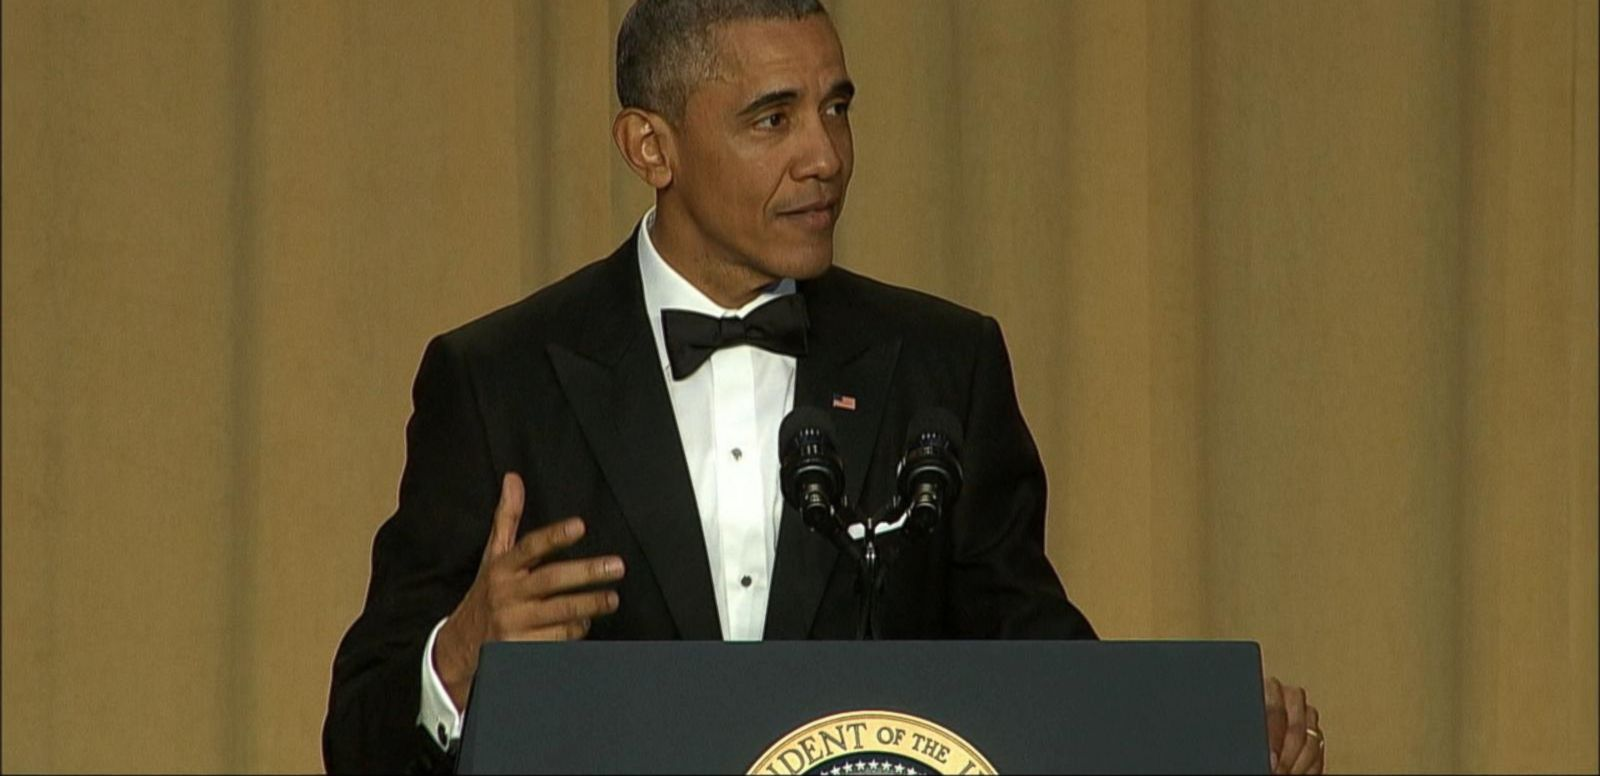 VIDEO: Obama Drops the Mic at His Last White House Correspondents Dinner